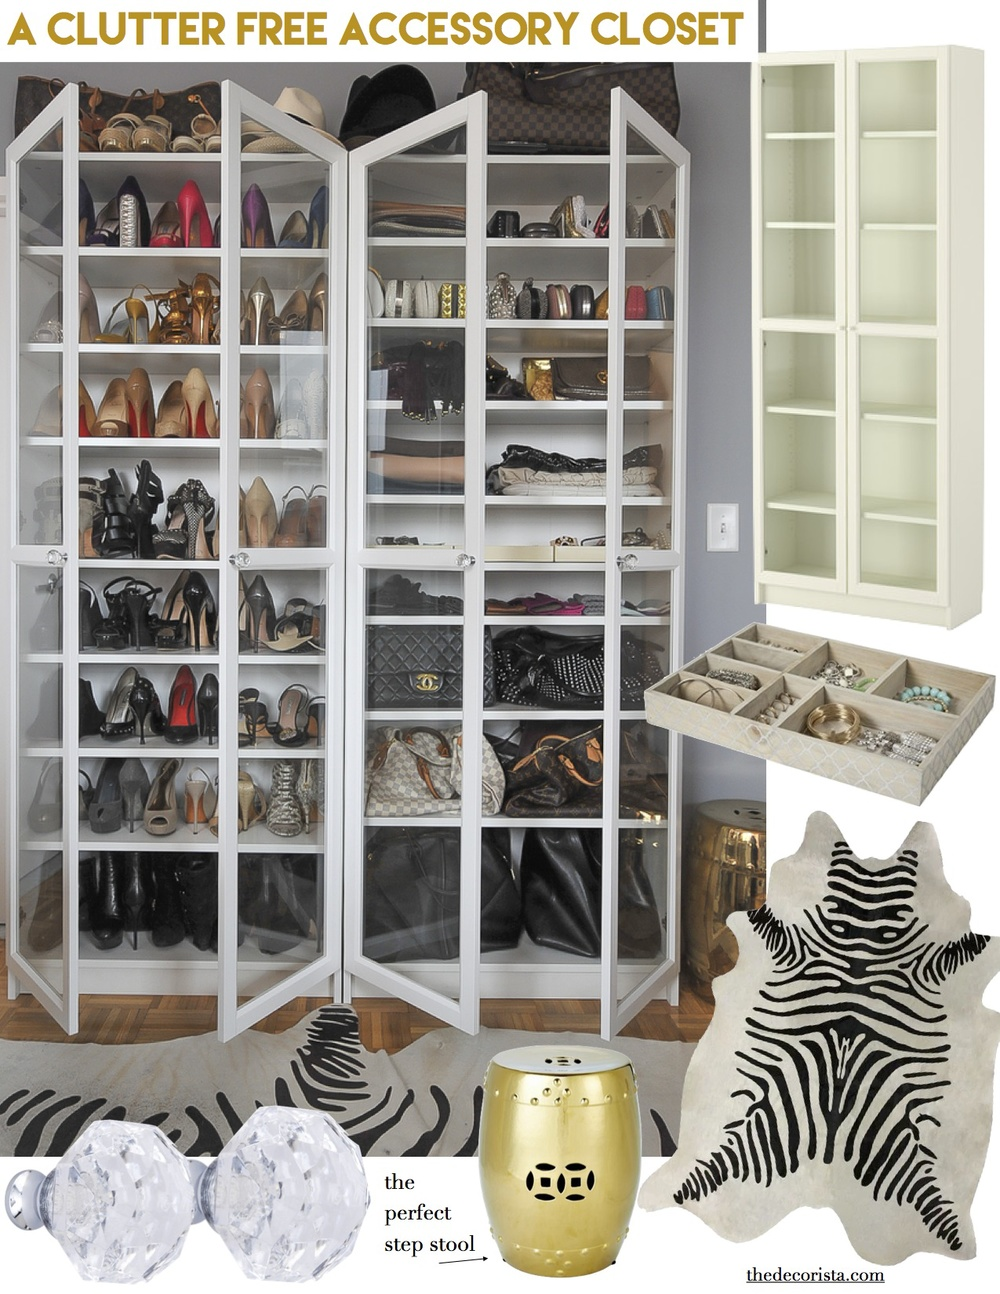 Weekend Decorating Idea: A Clutter Free Accessory Closet